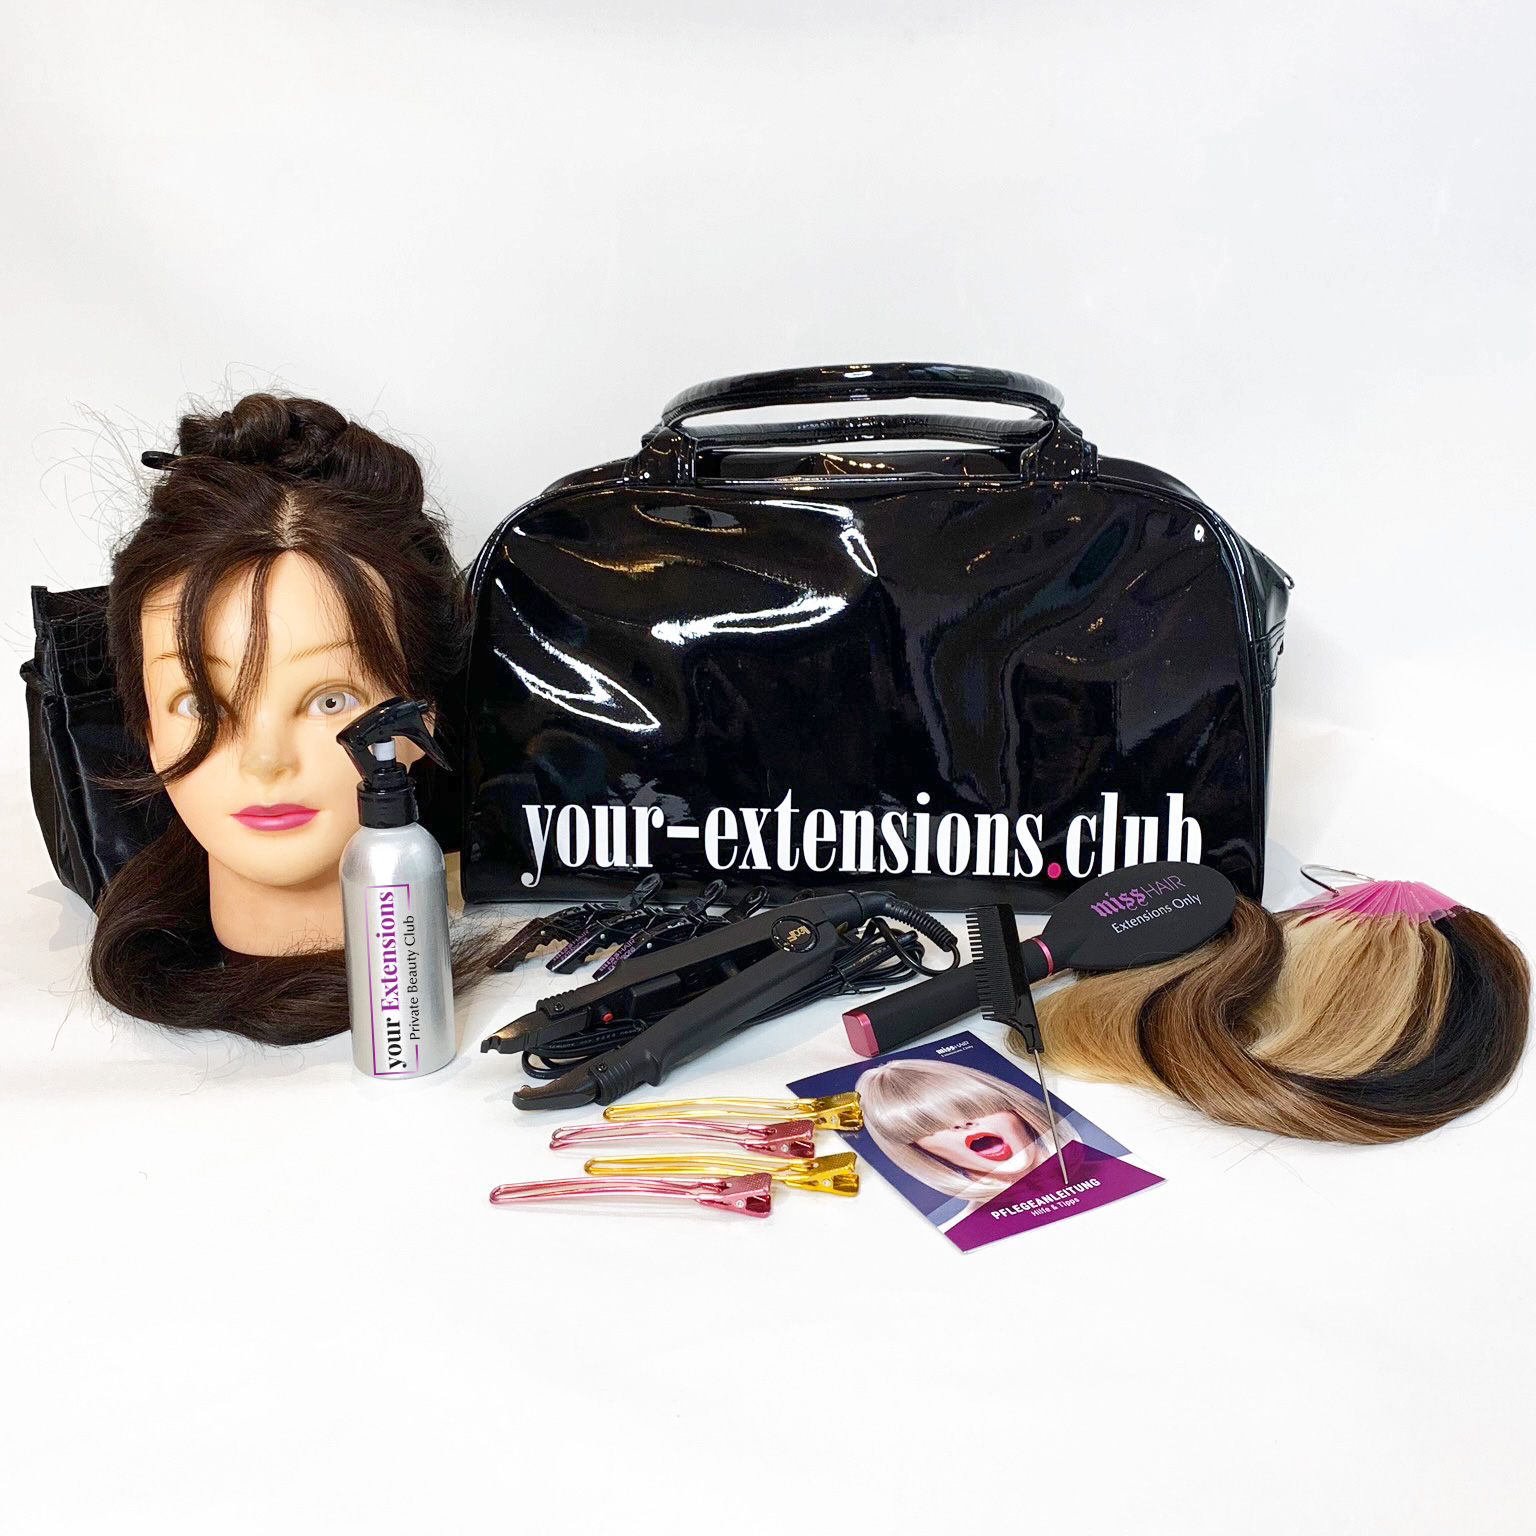 Extensions-Only-Club-Tasche.jpg